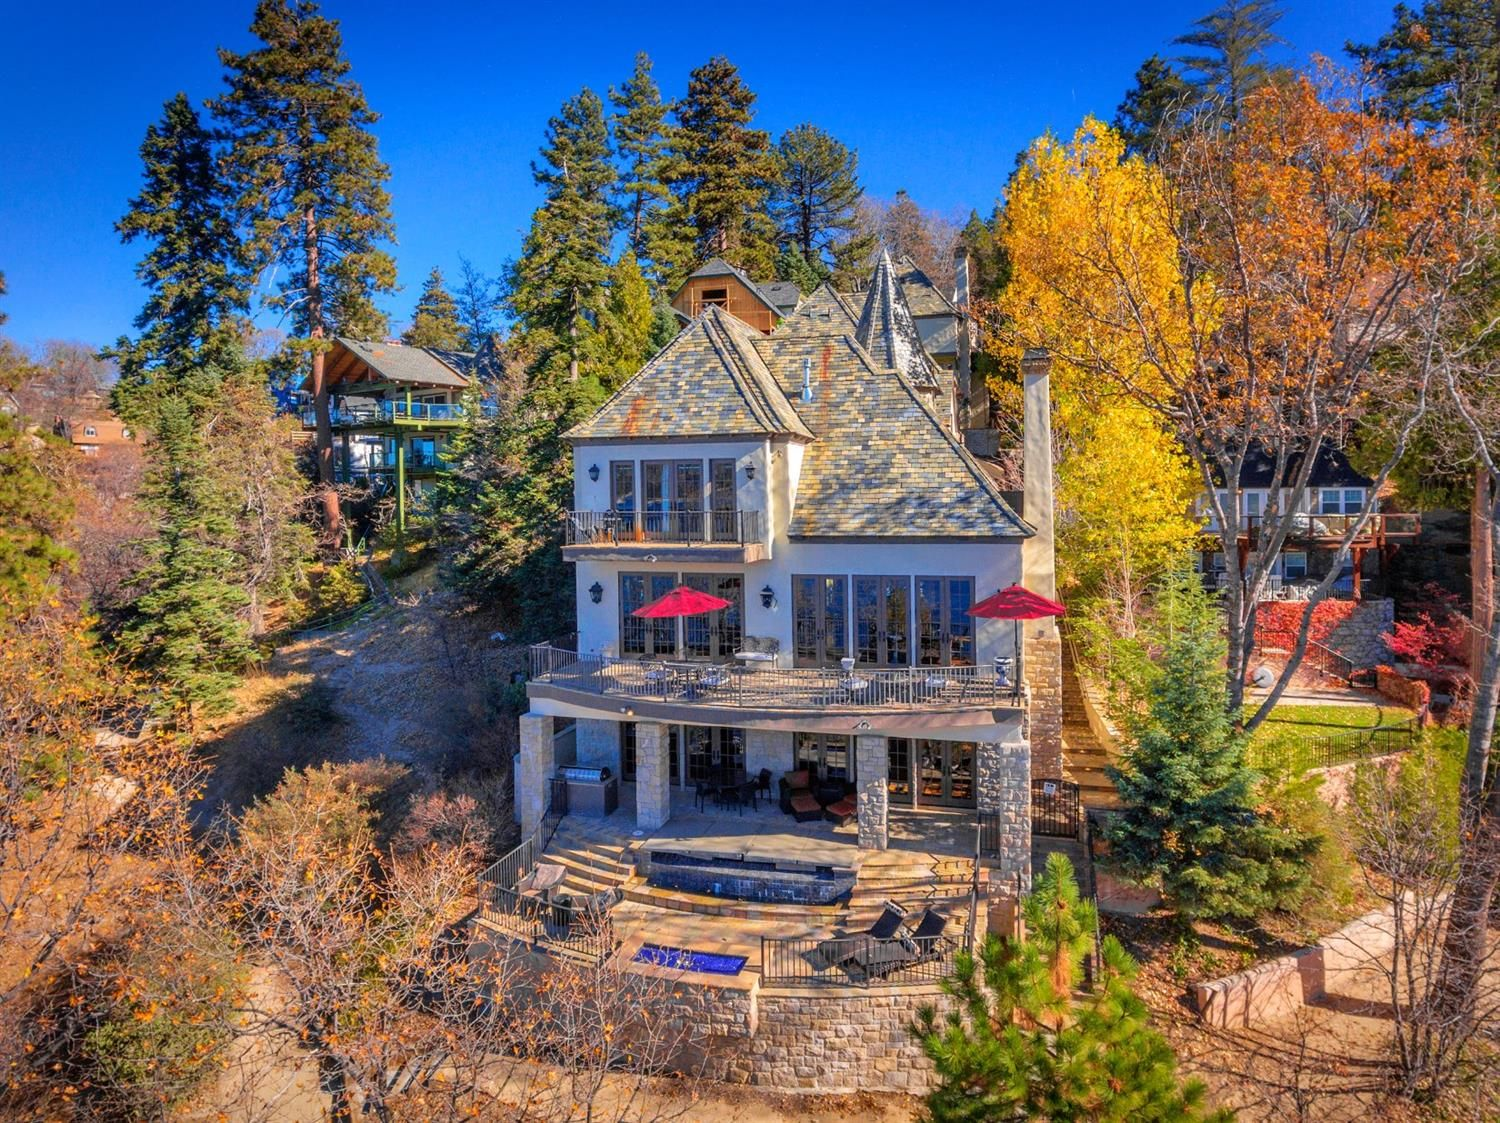 Sammy Hagar S Lake Front Arrowhead Property For Sale At 3 9 Million